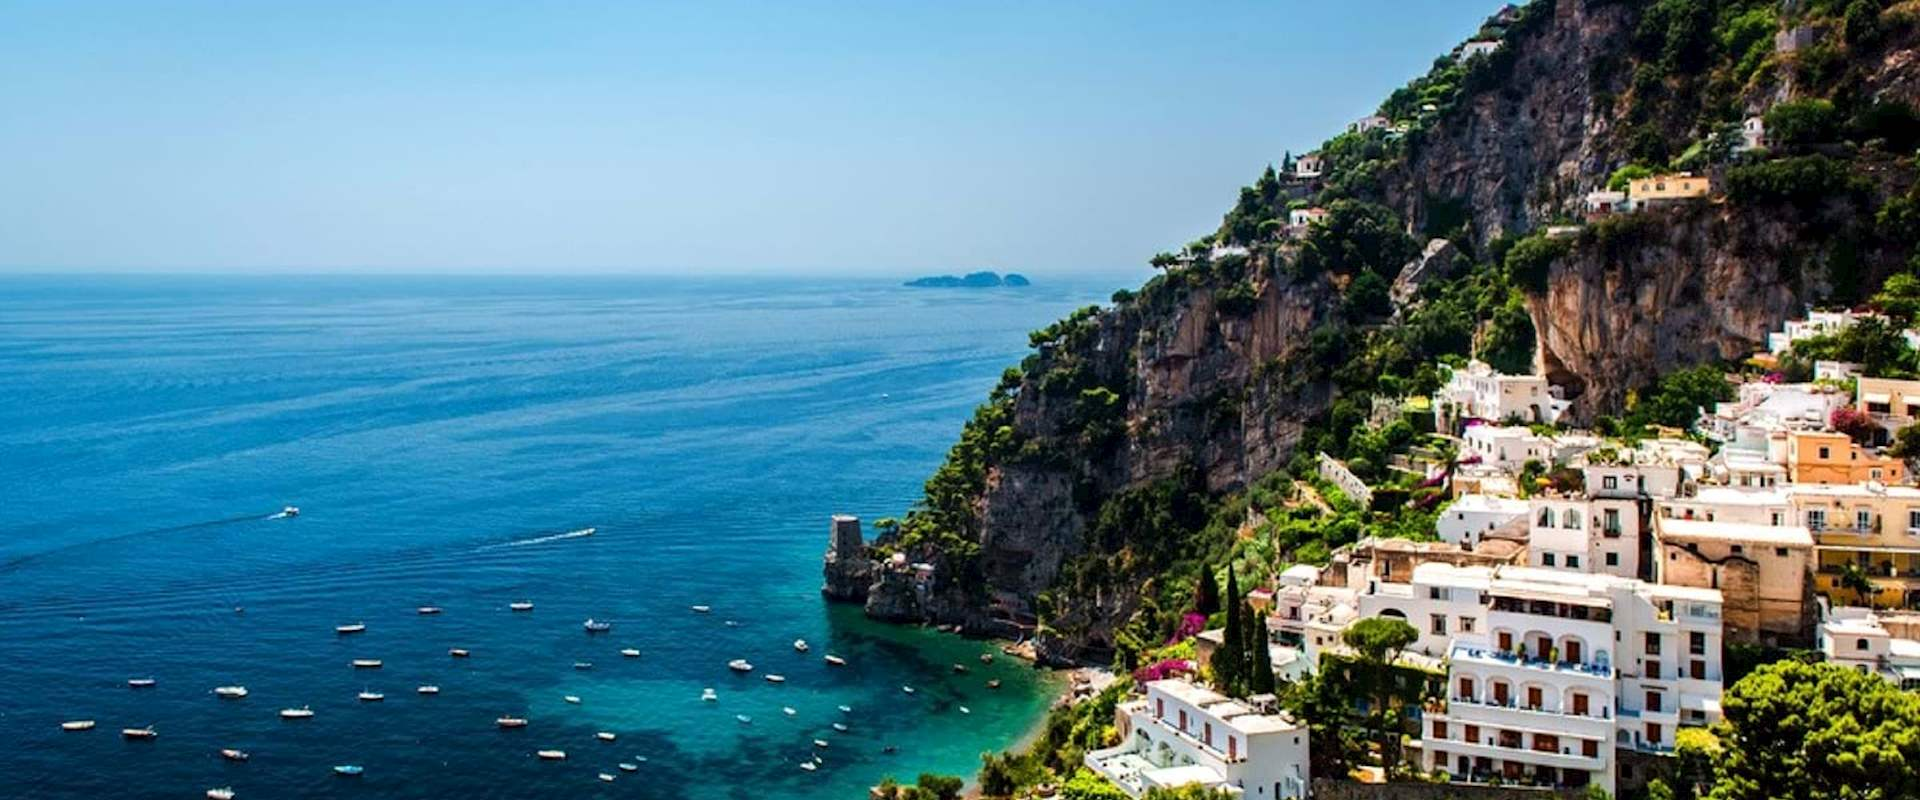 Private Tours From Rome To Positano